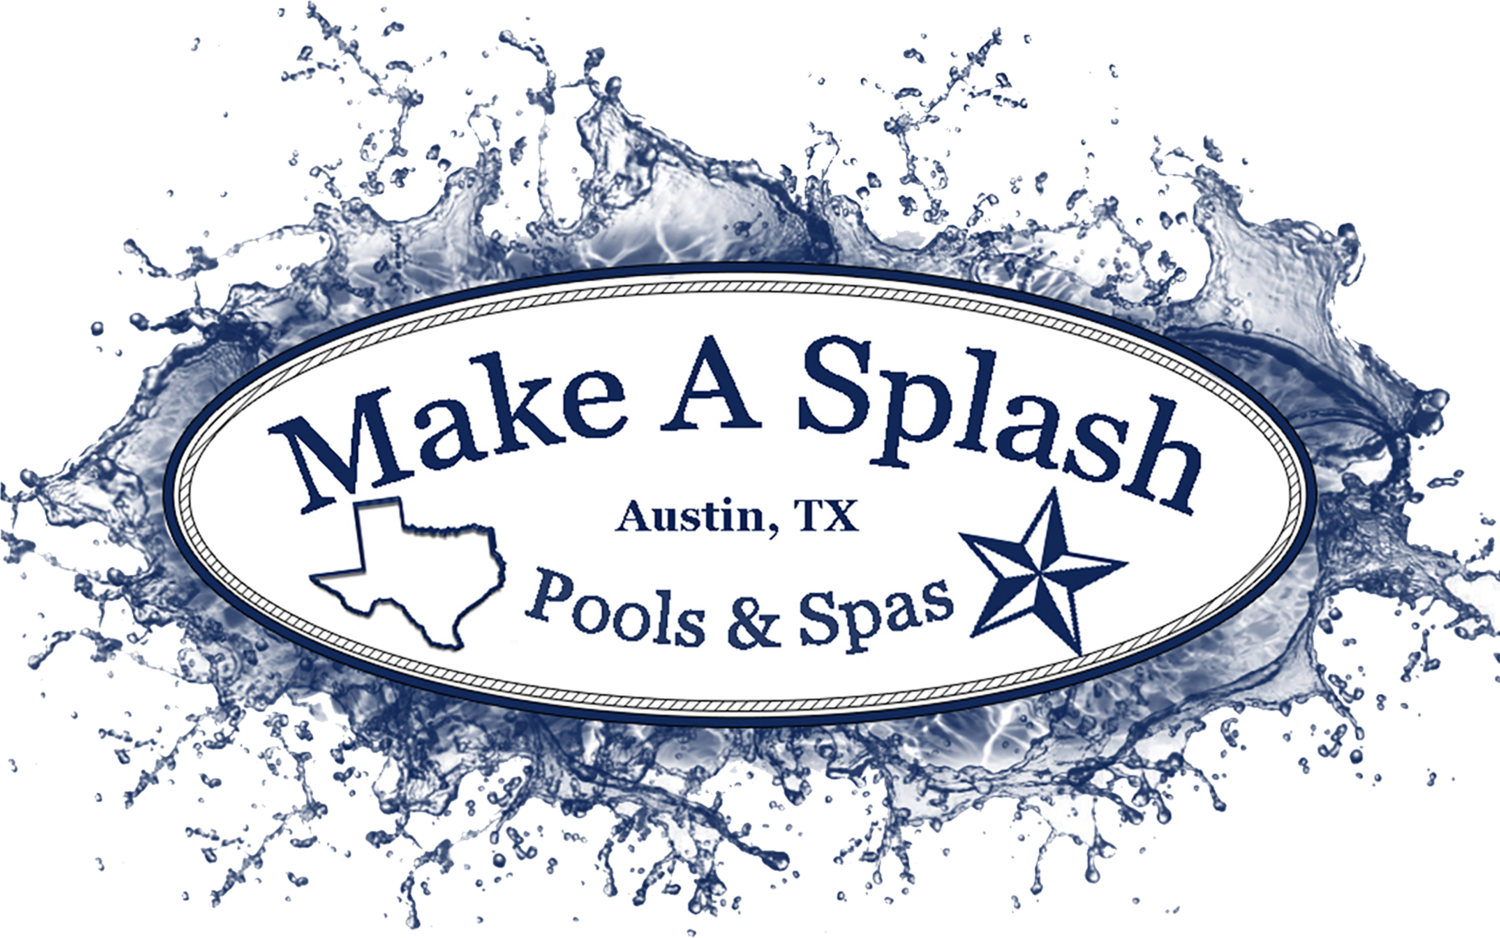 Make A Splash Pools & Spas